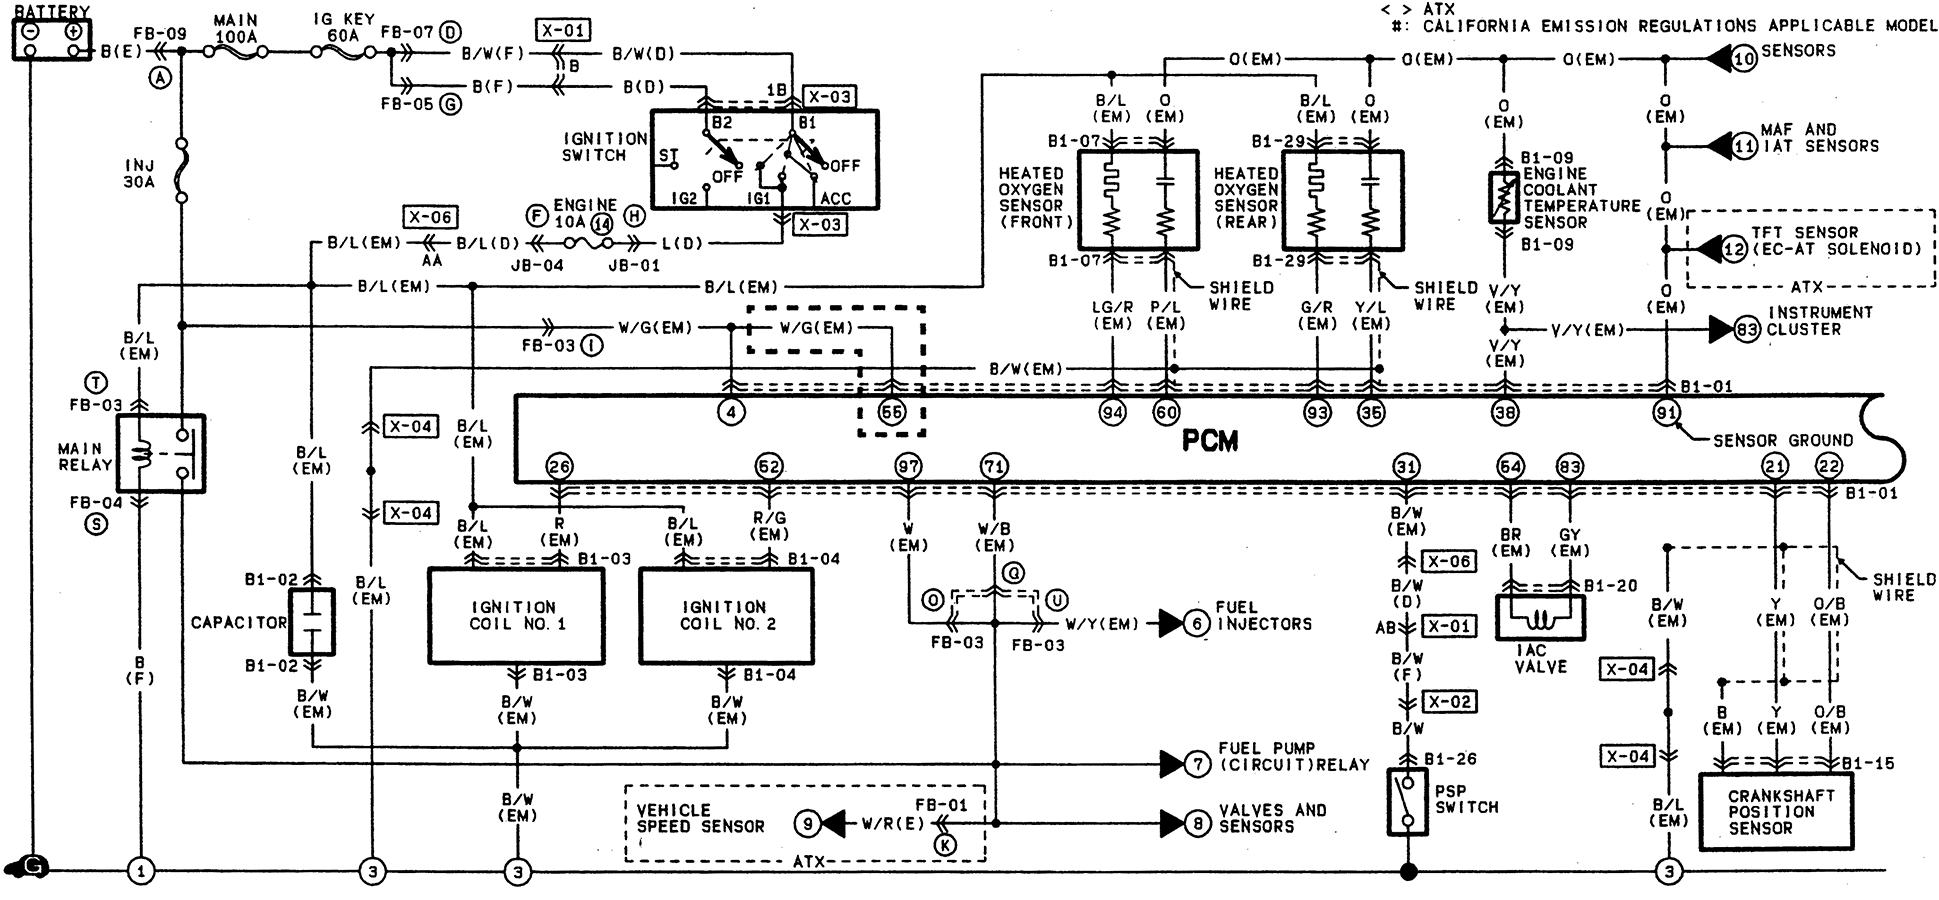 03 mazda sensor diagram 03 get free image about wiring diagram